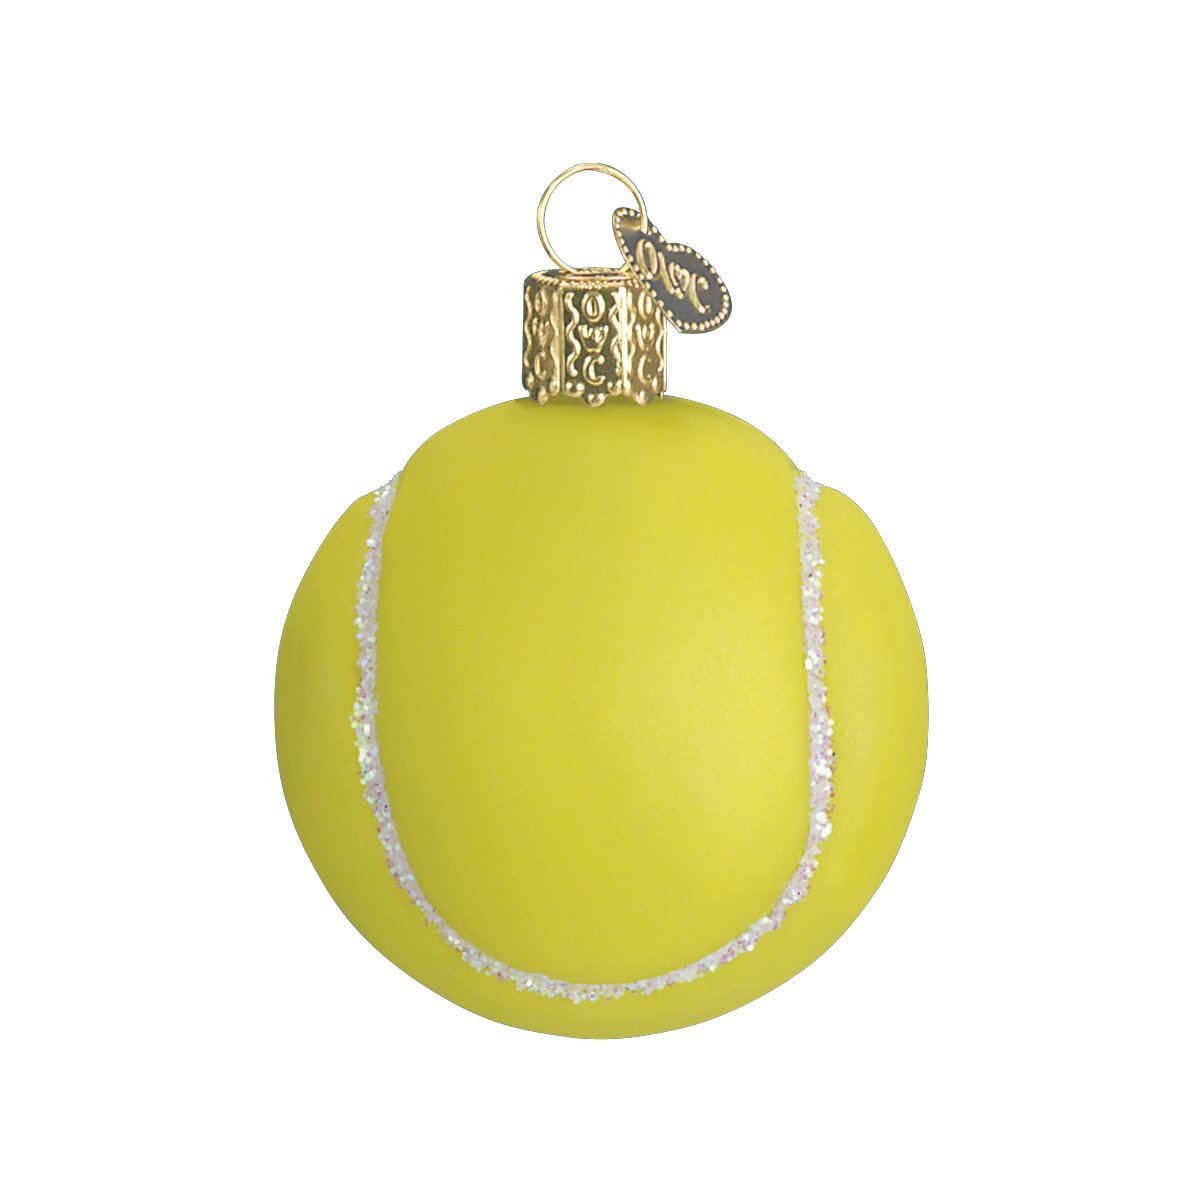 Tennis christmas ornaments - Amazon Com Old World Christmas Tennis Ball Glass Blown Ornament Home Kitchen